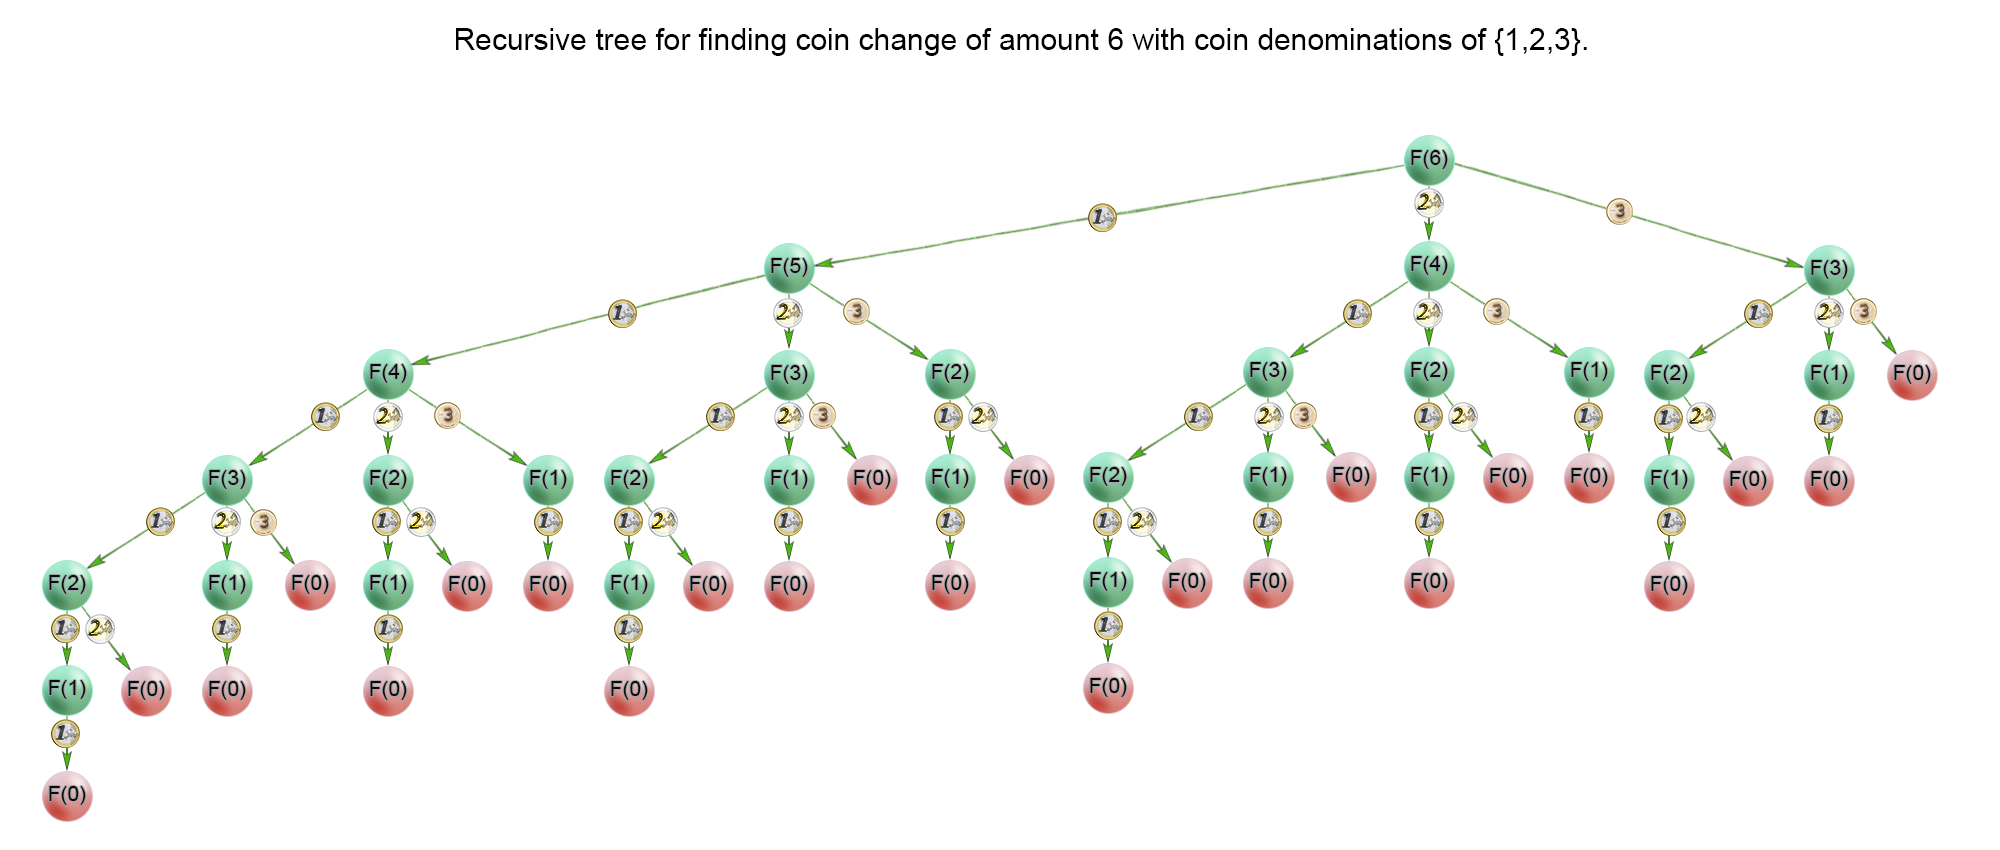 Recursion tree for finding coin change of amount 6 with coin denominations {1,2,3}.